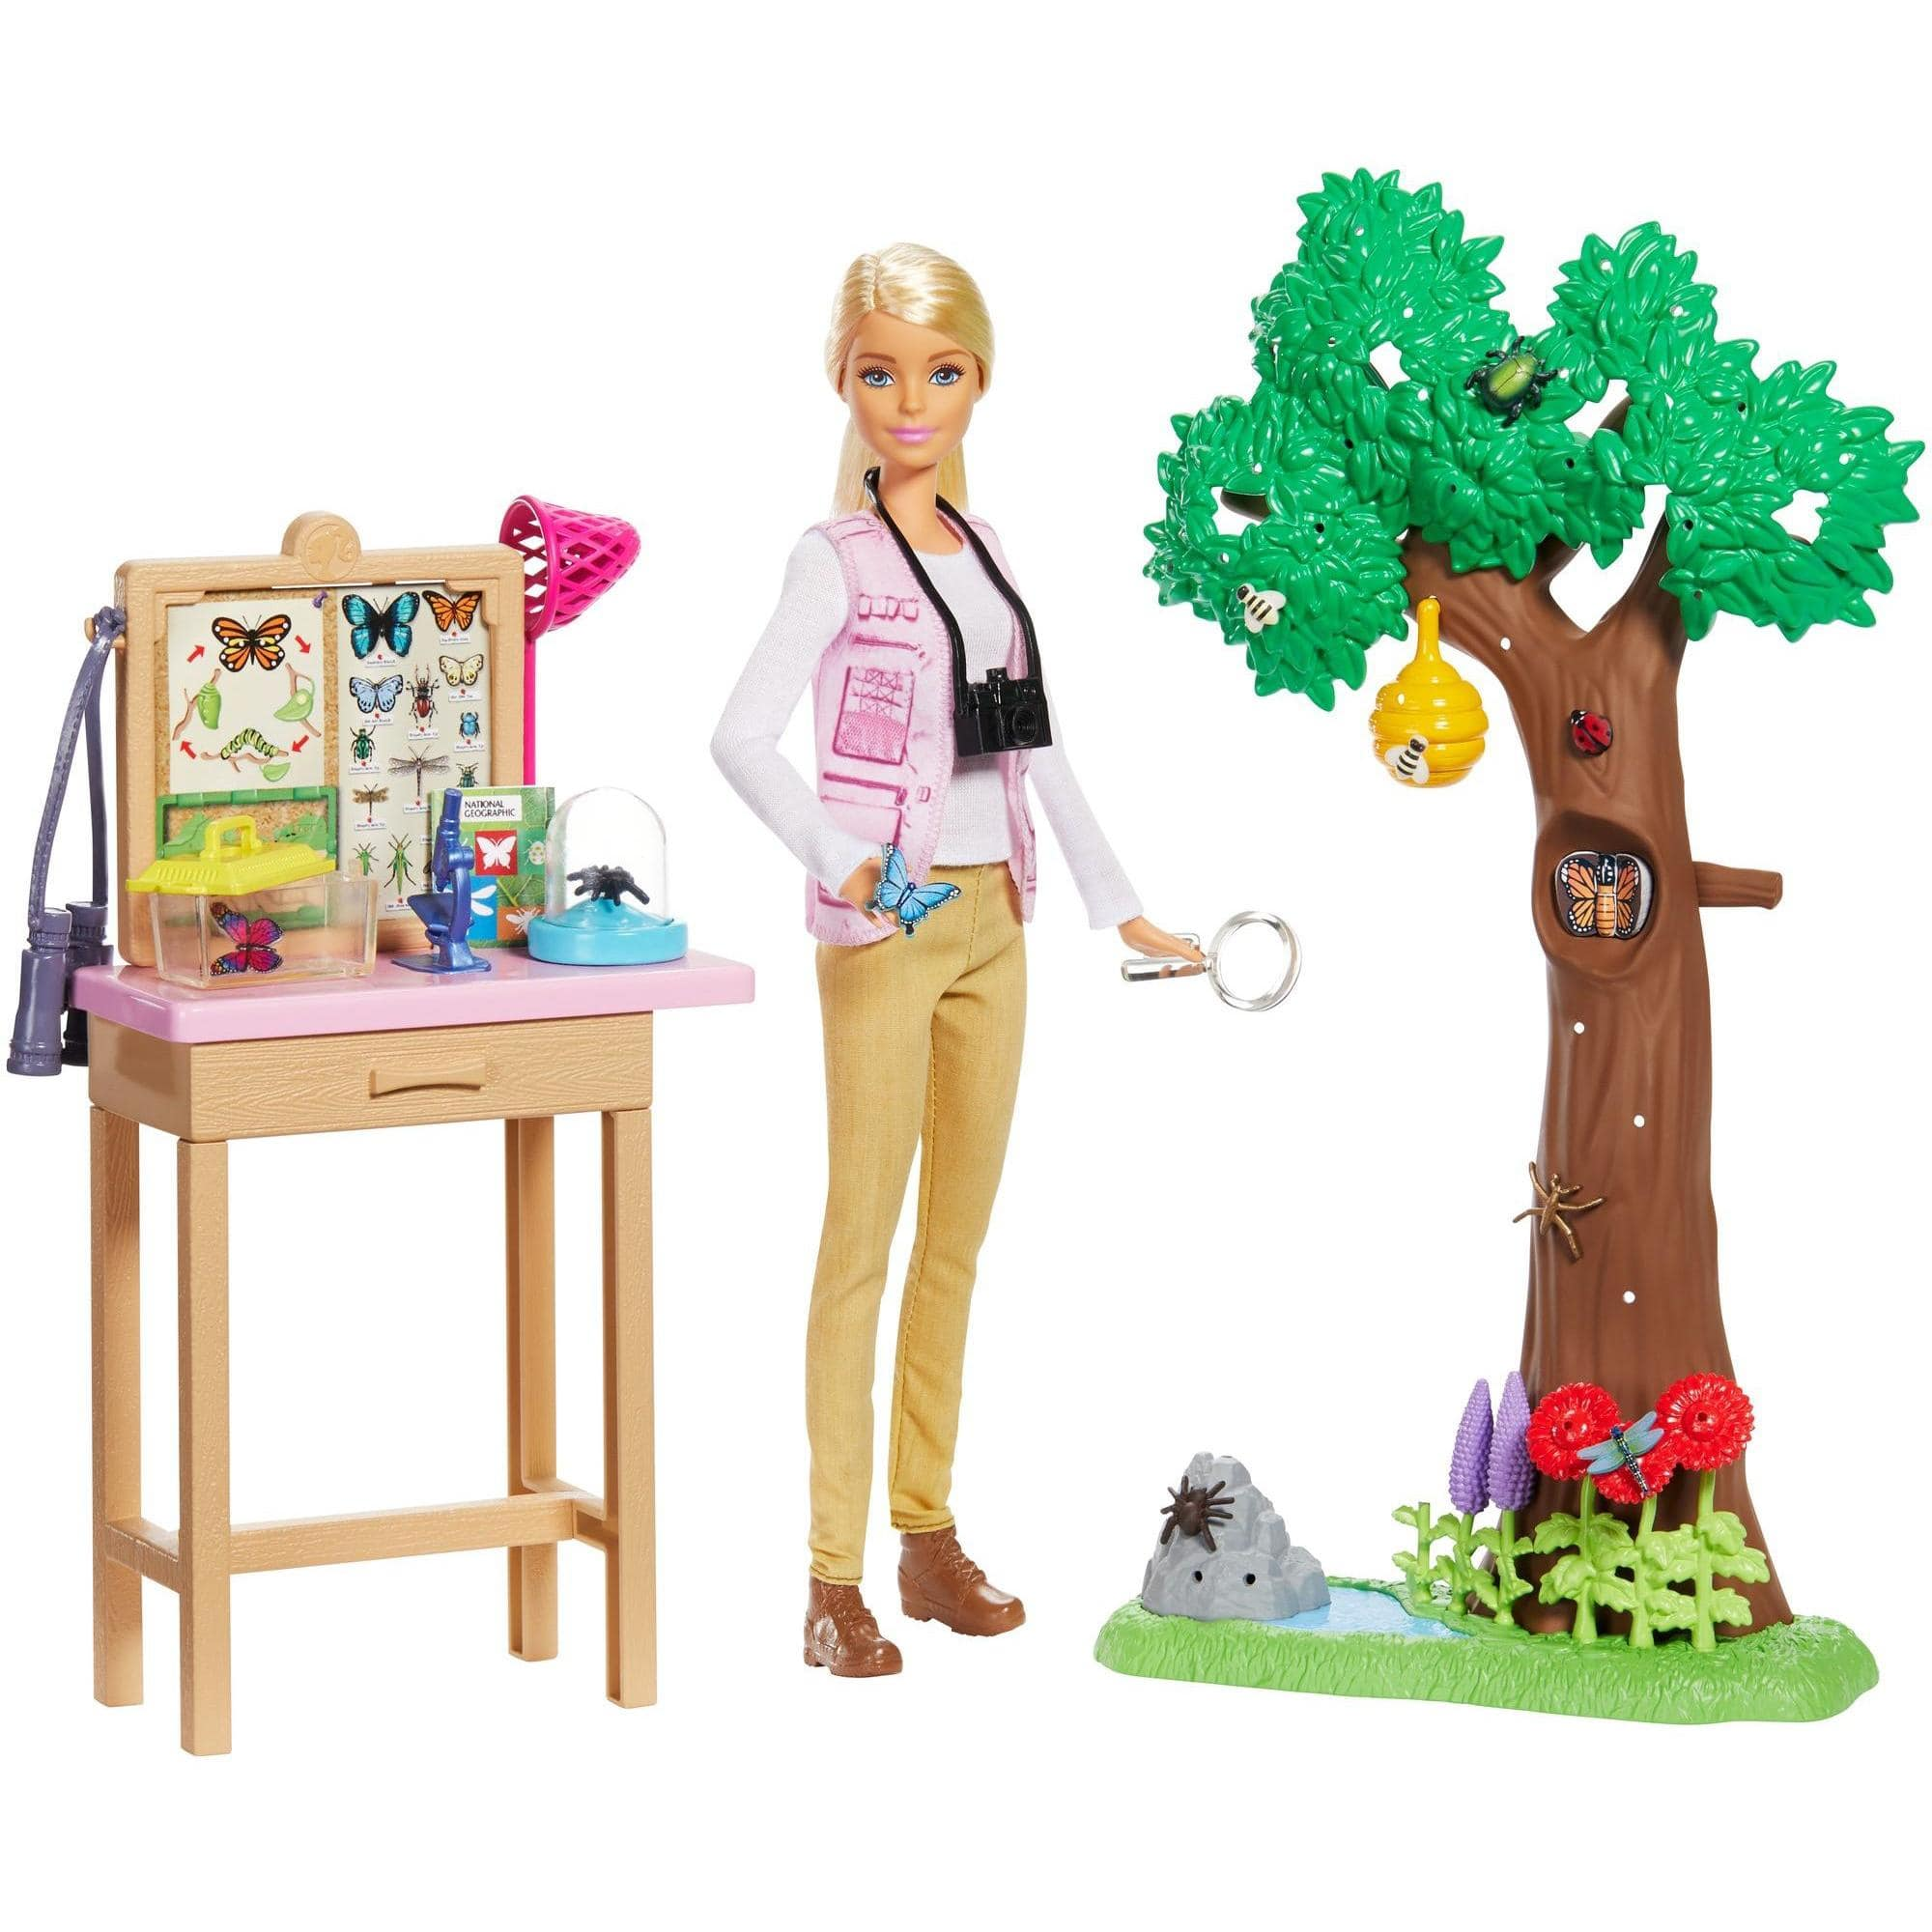 Barbie National Geographic Entomologist Doll and Themed Playset $13.10 + Free Store Pickup